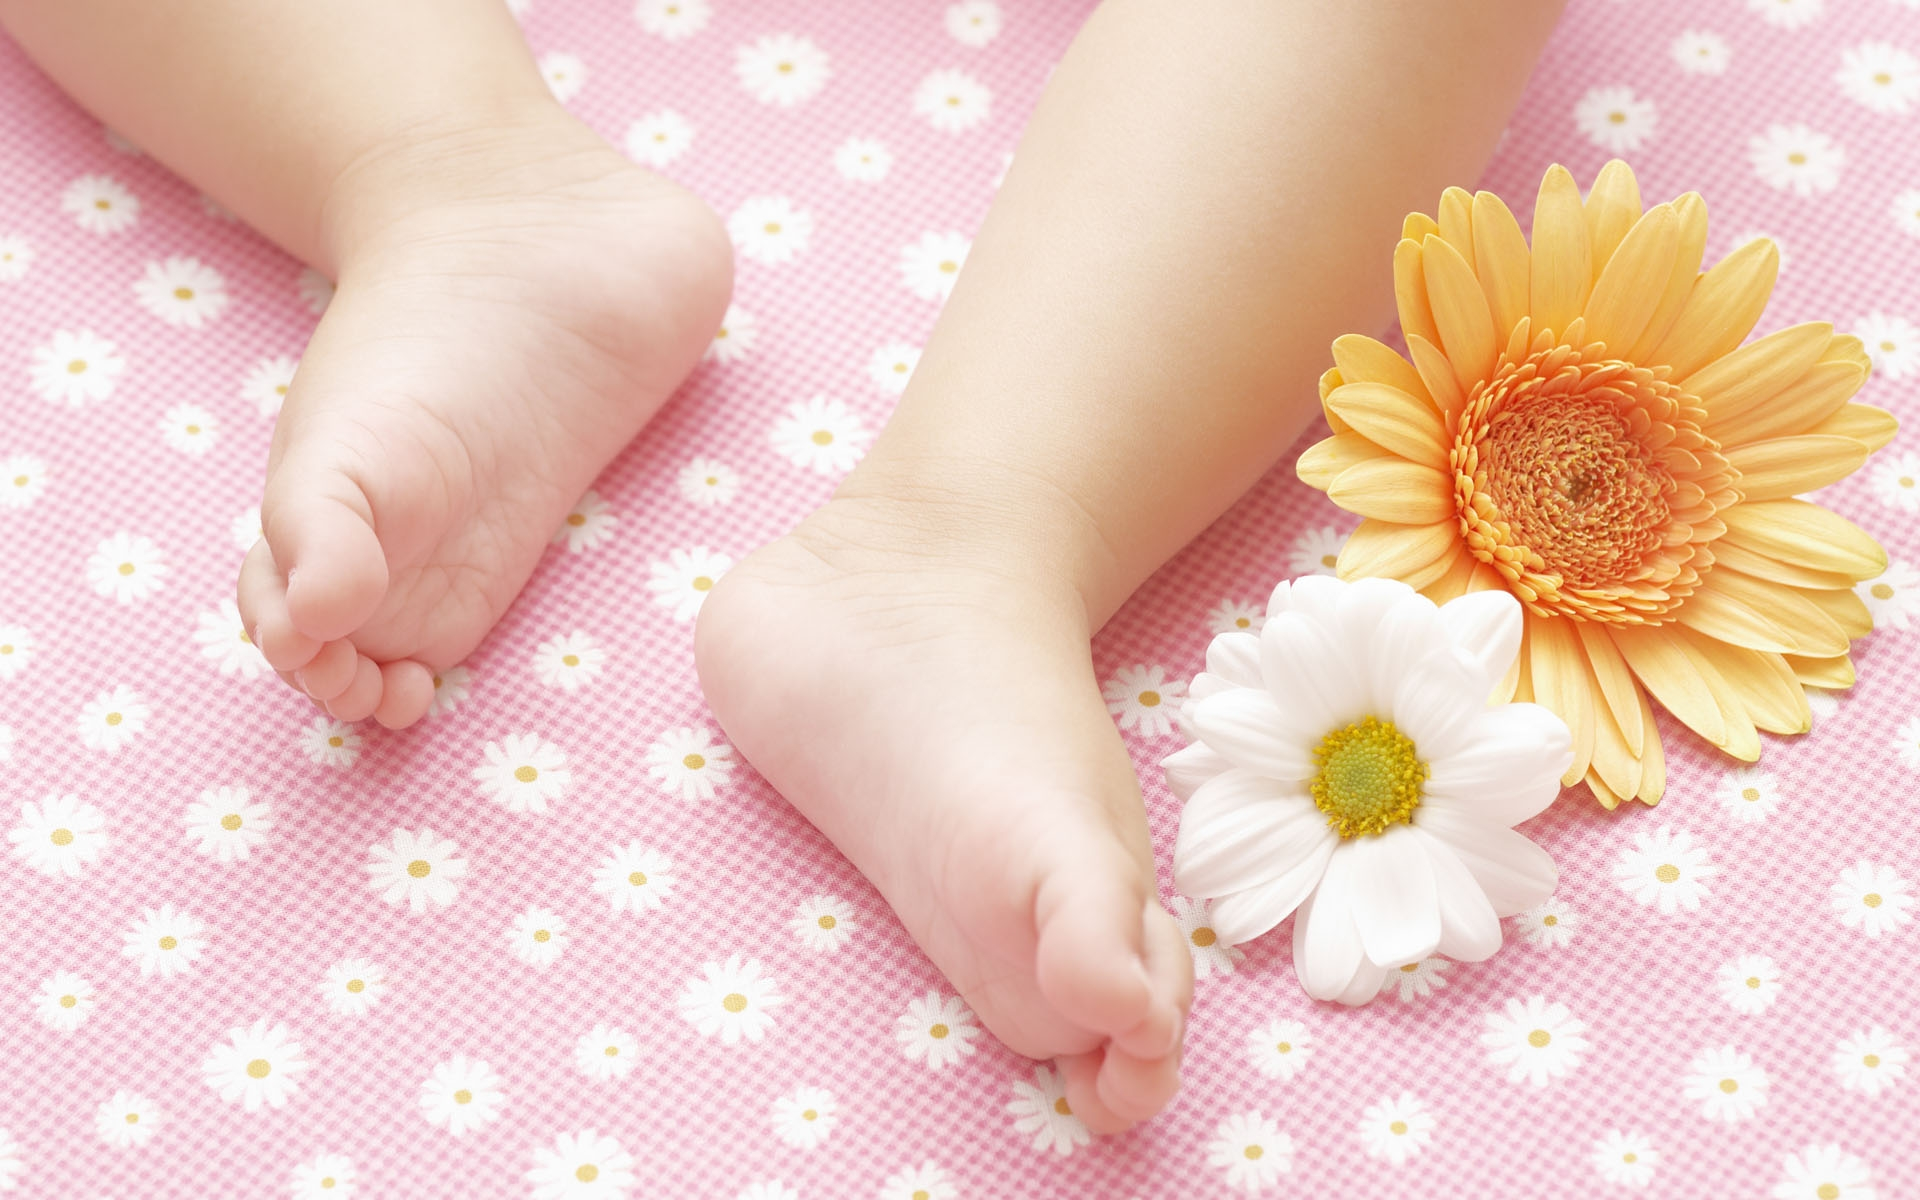 Download Wallpaper child feet flowers baby HD Background 1920x1200